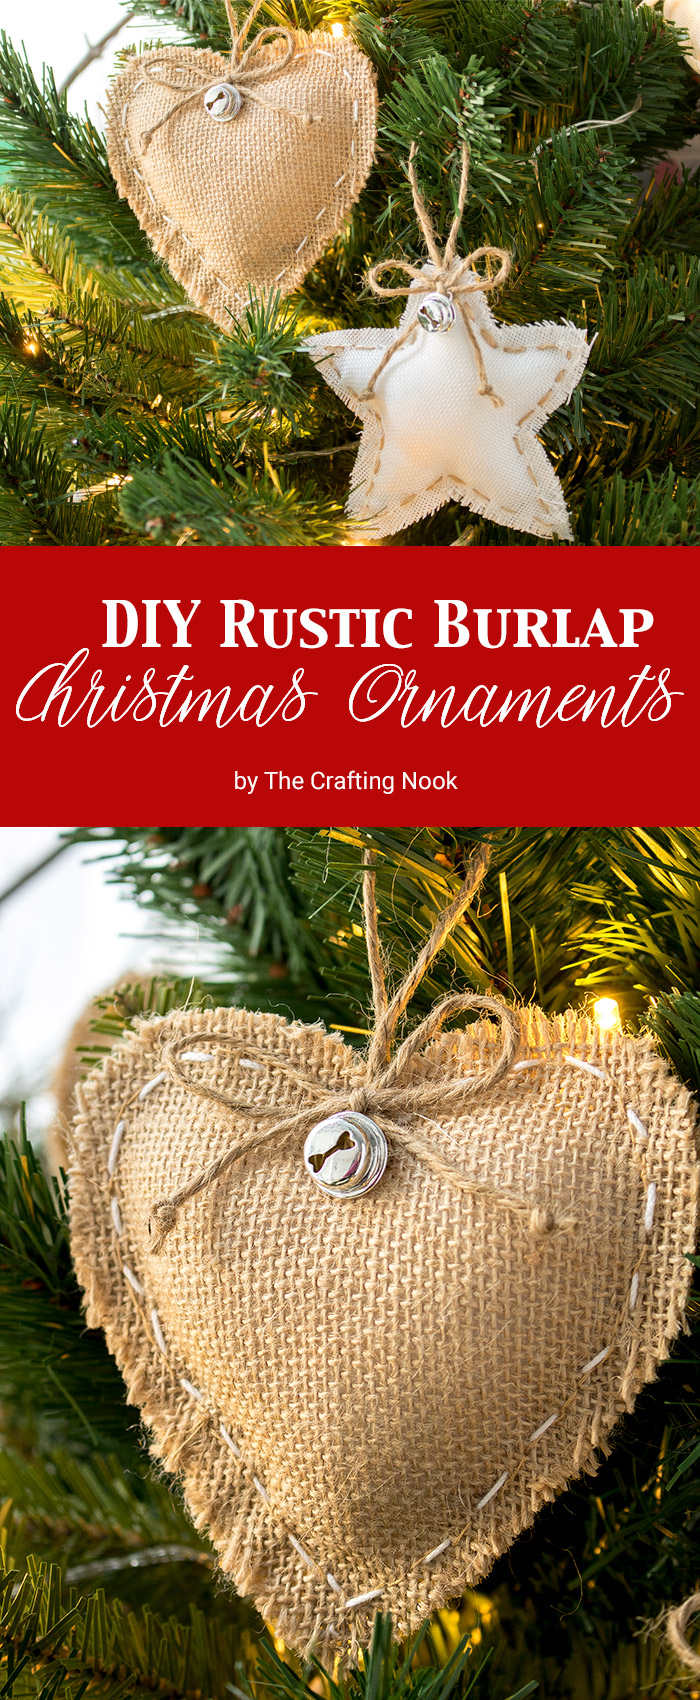 DIY Rustic Burlap Christmas Ornaments (with Video Tutorial ...